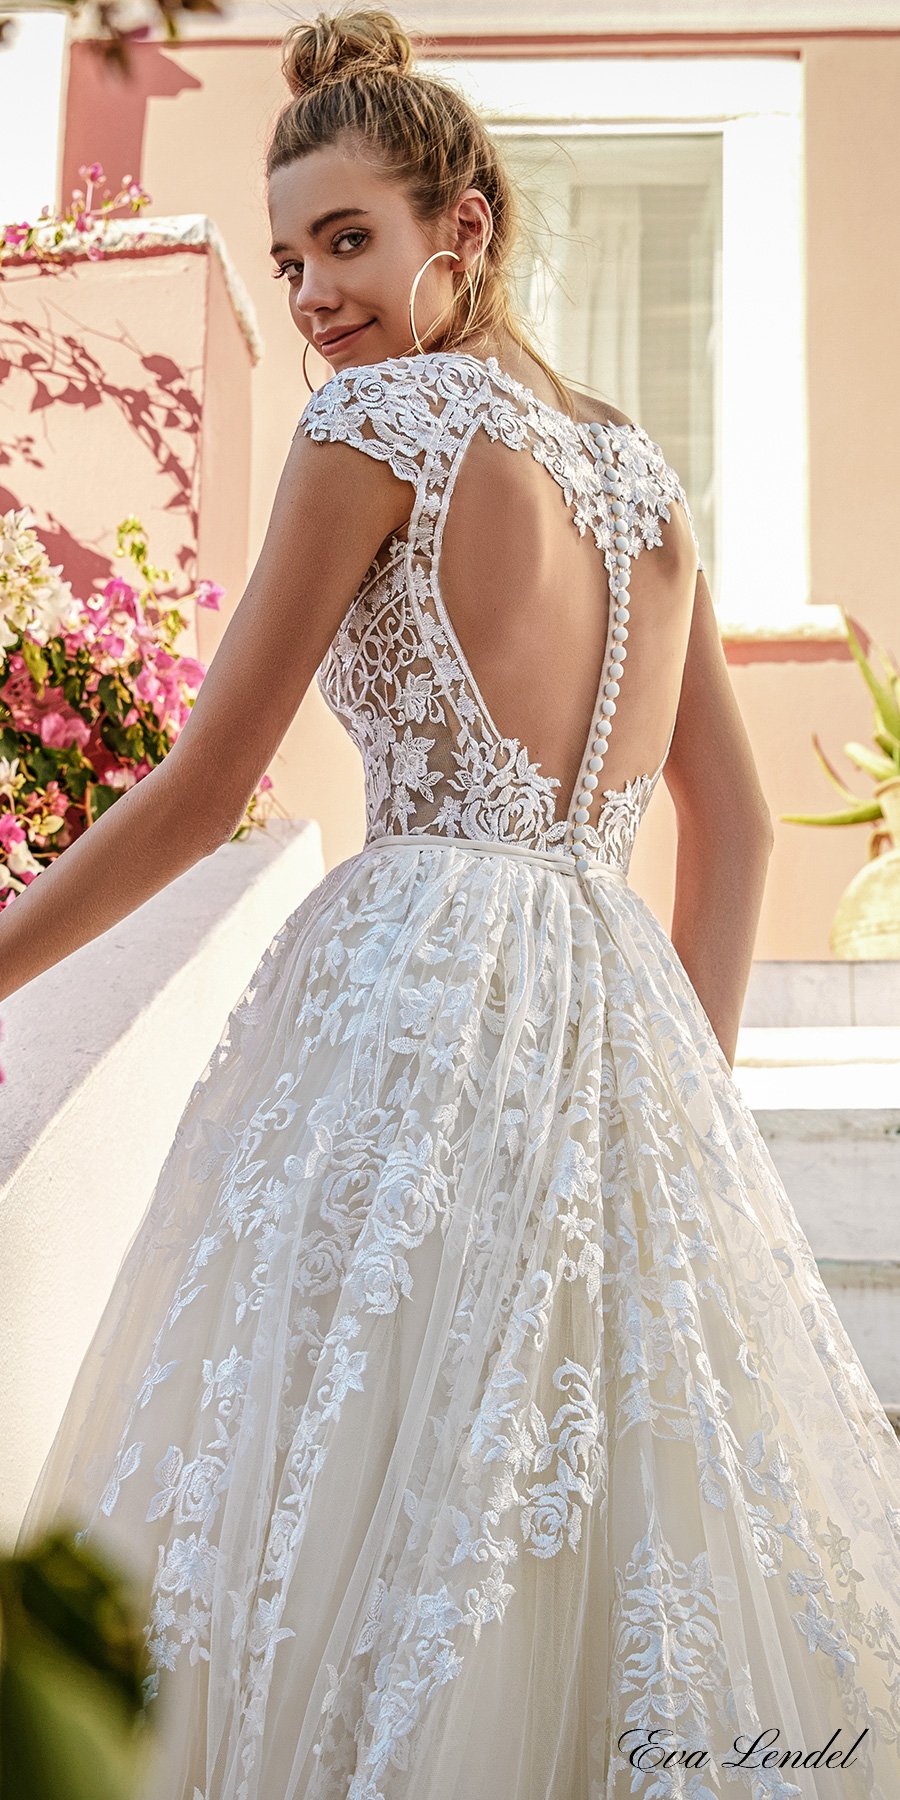 eva lendel 2017 bridal cap sleeves off the shoulder scoop neck full embellishment romantic priincess a  line wedding dress keyhole back chapel train (perry) zbv